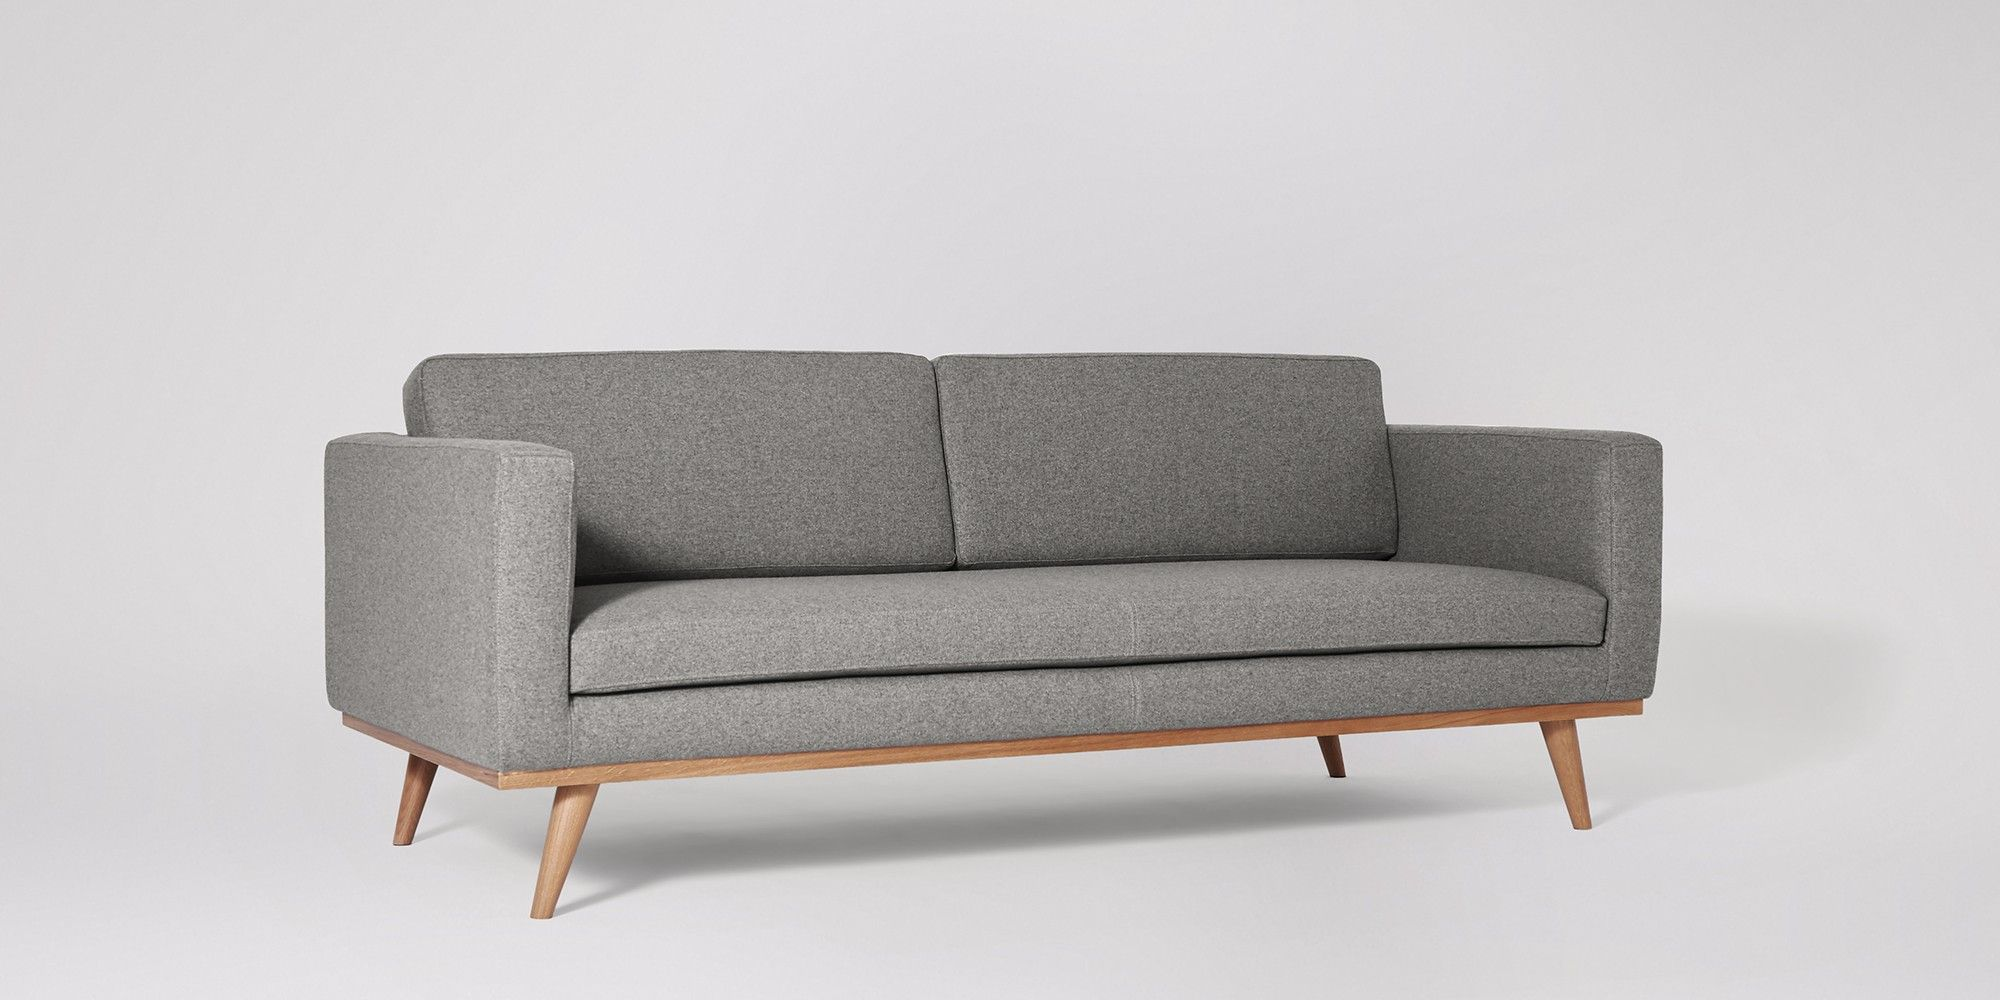 Swoon Editions Three-seater sofa, mid-century style in Granite - £729